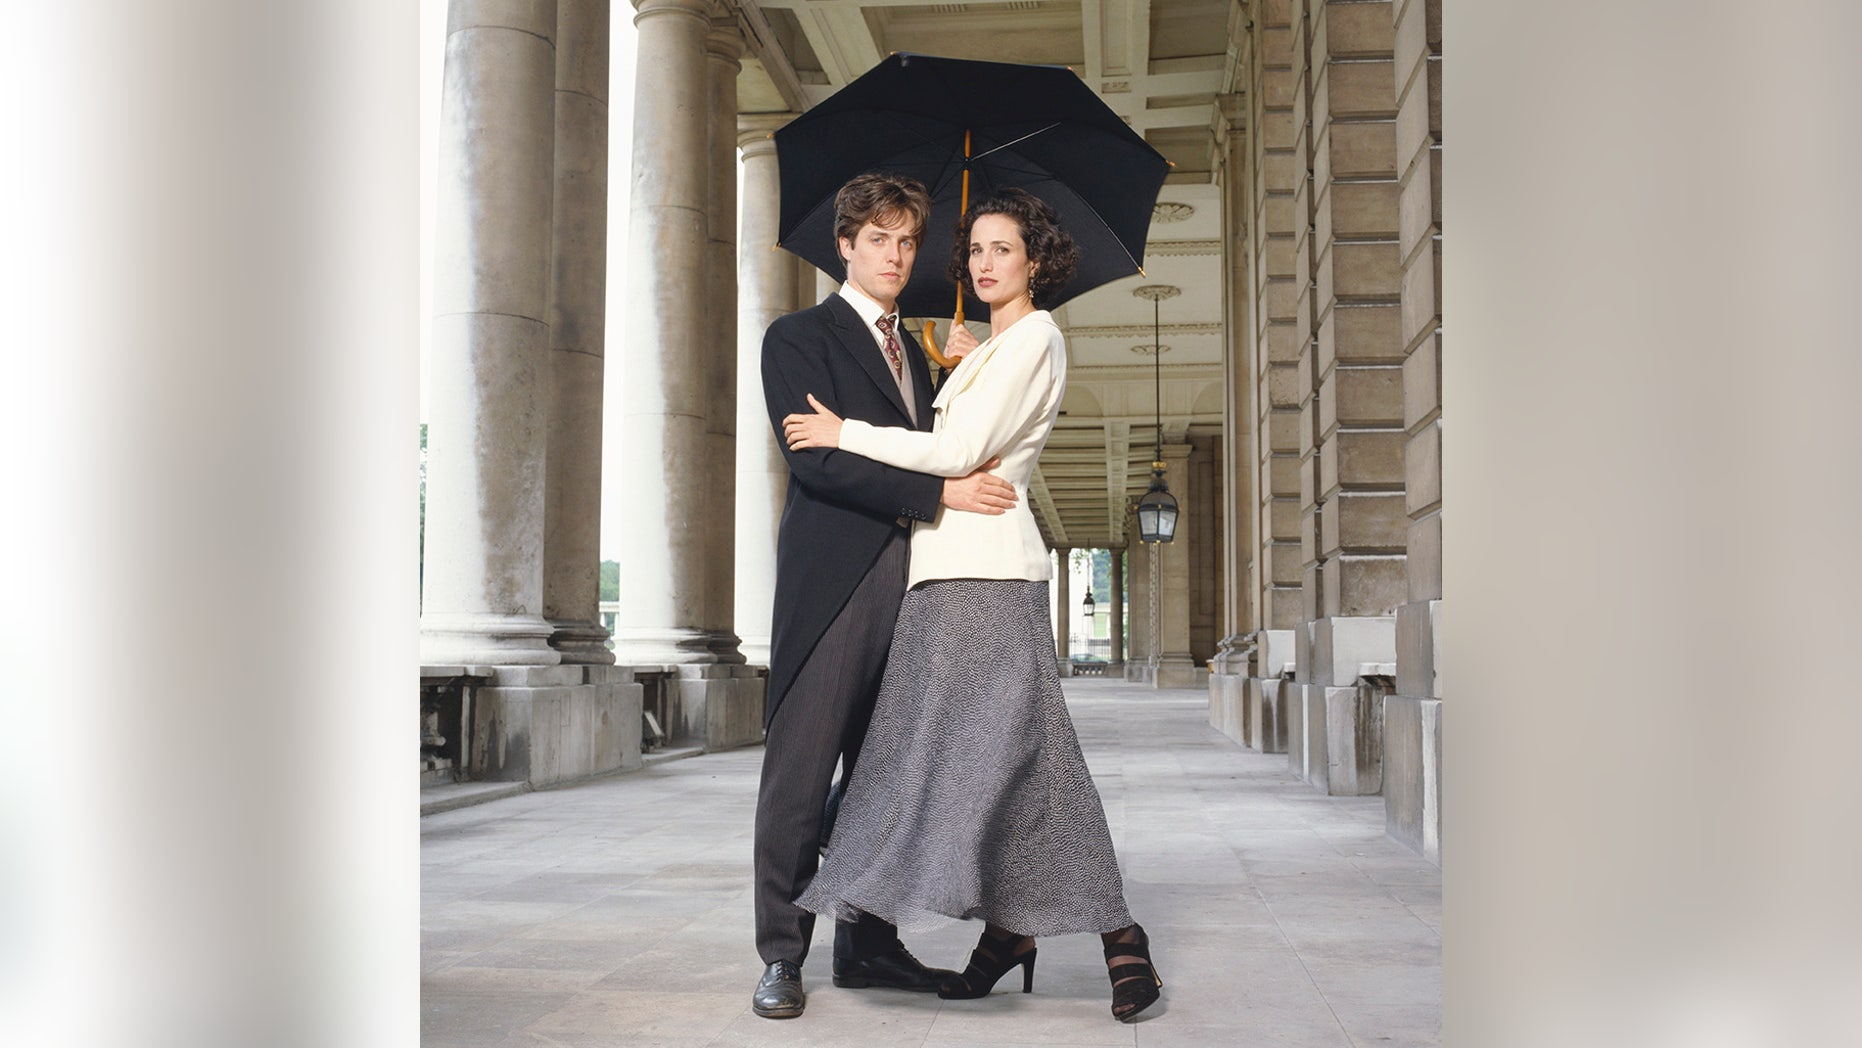 Actor Hugh Grant and actress Andie MacDowell posing as their characters from Richard Curtis' 1994 comedy 'Four Weddings And A Funeral.""